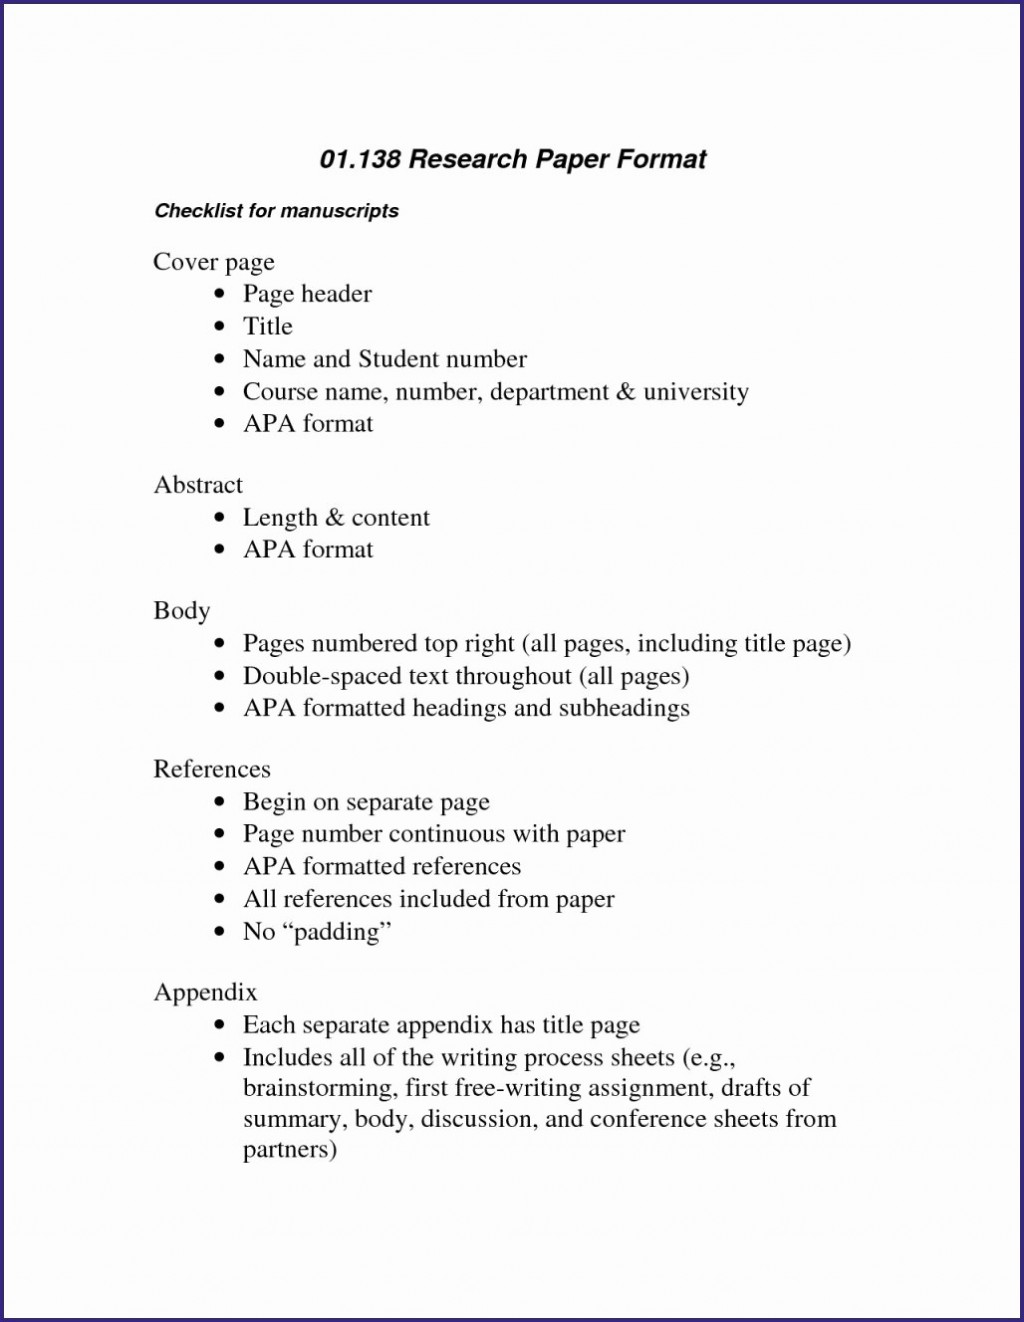 014 Research Paper Abstract For Apa Style Template Lovely Beautiful Super Example Wondrous Writing An A Of In Format Large